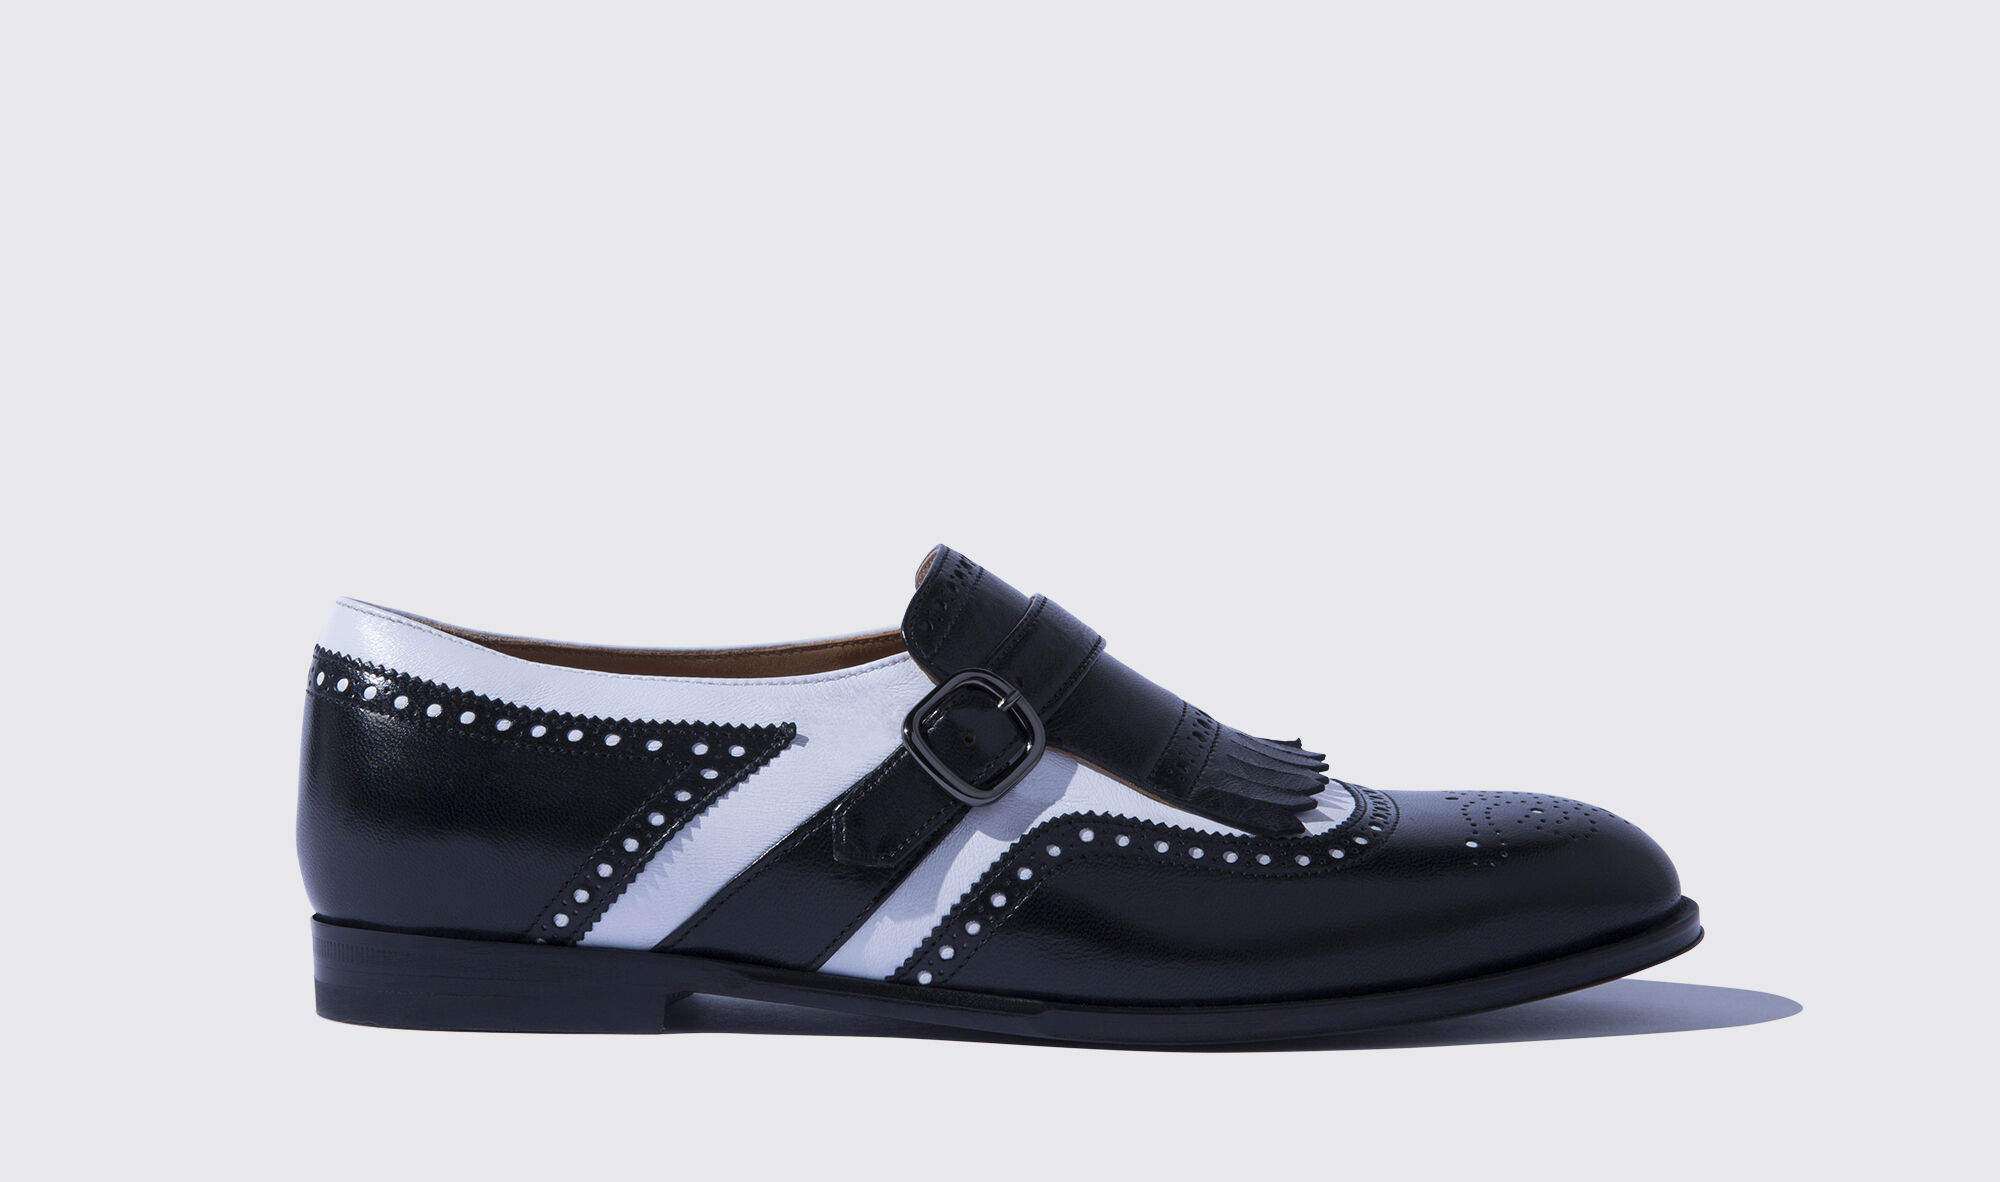 Free Shipping Exclusive Free Shipping Best Store To Get Scarosso Monks Lily Discount Buy wwVPv